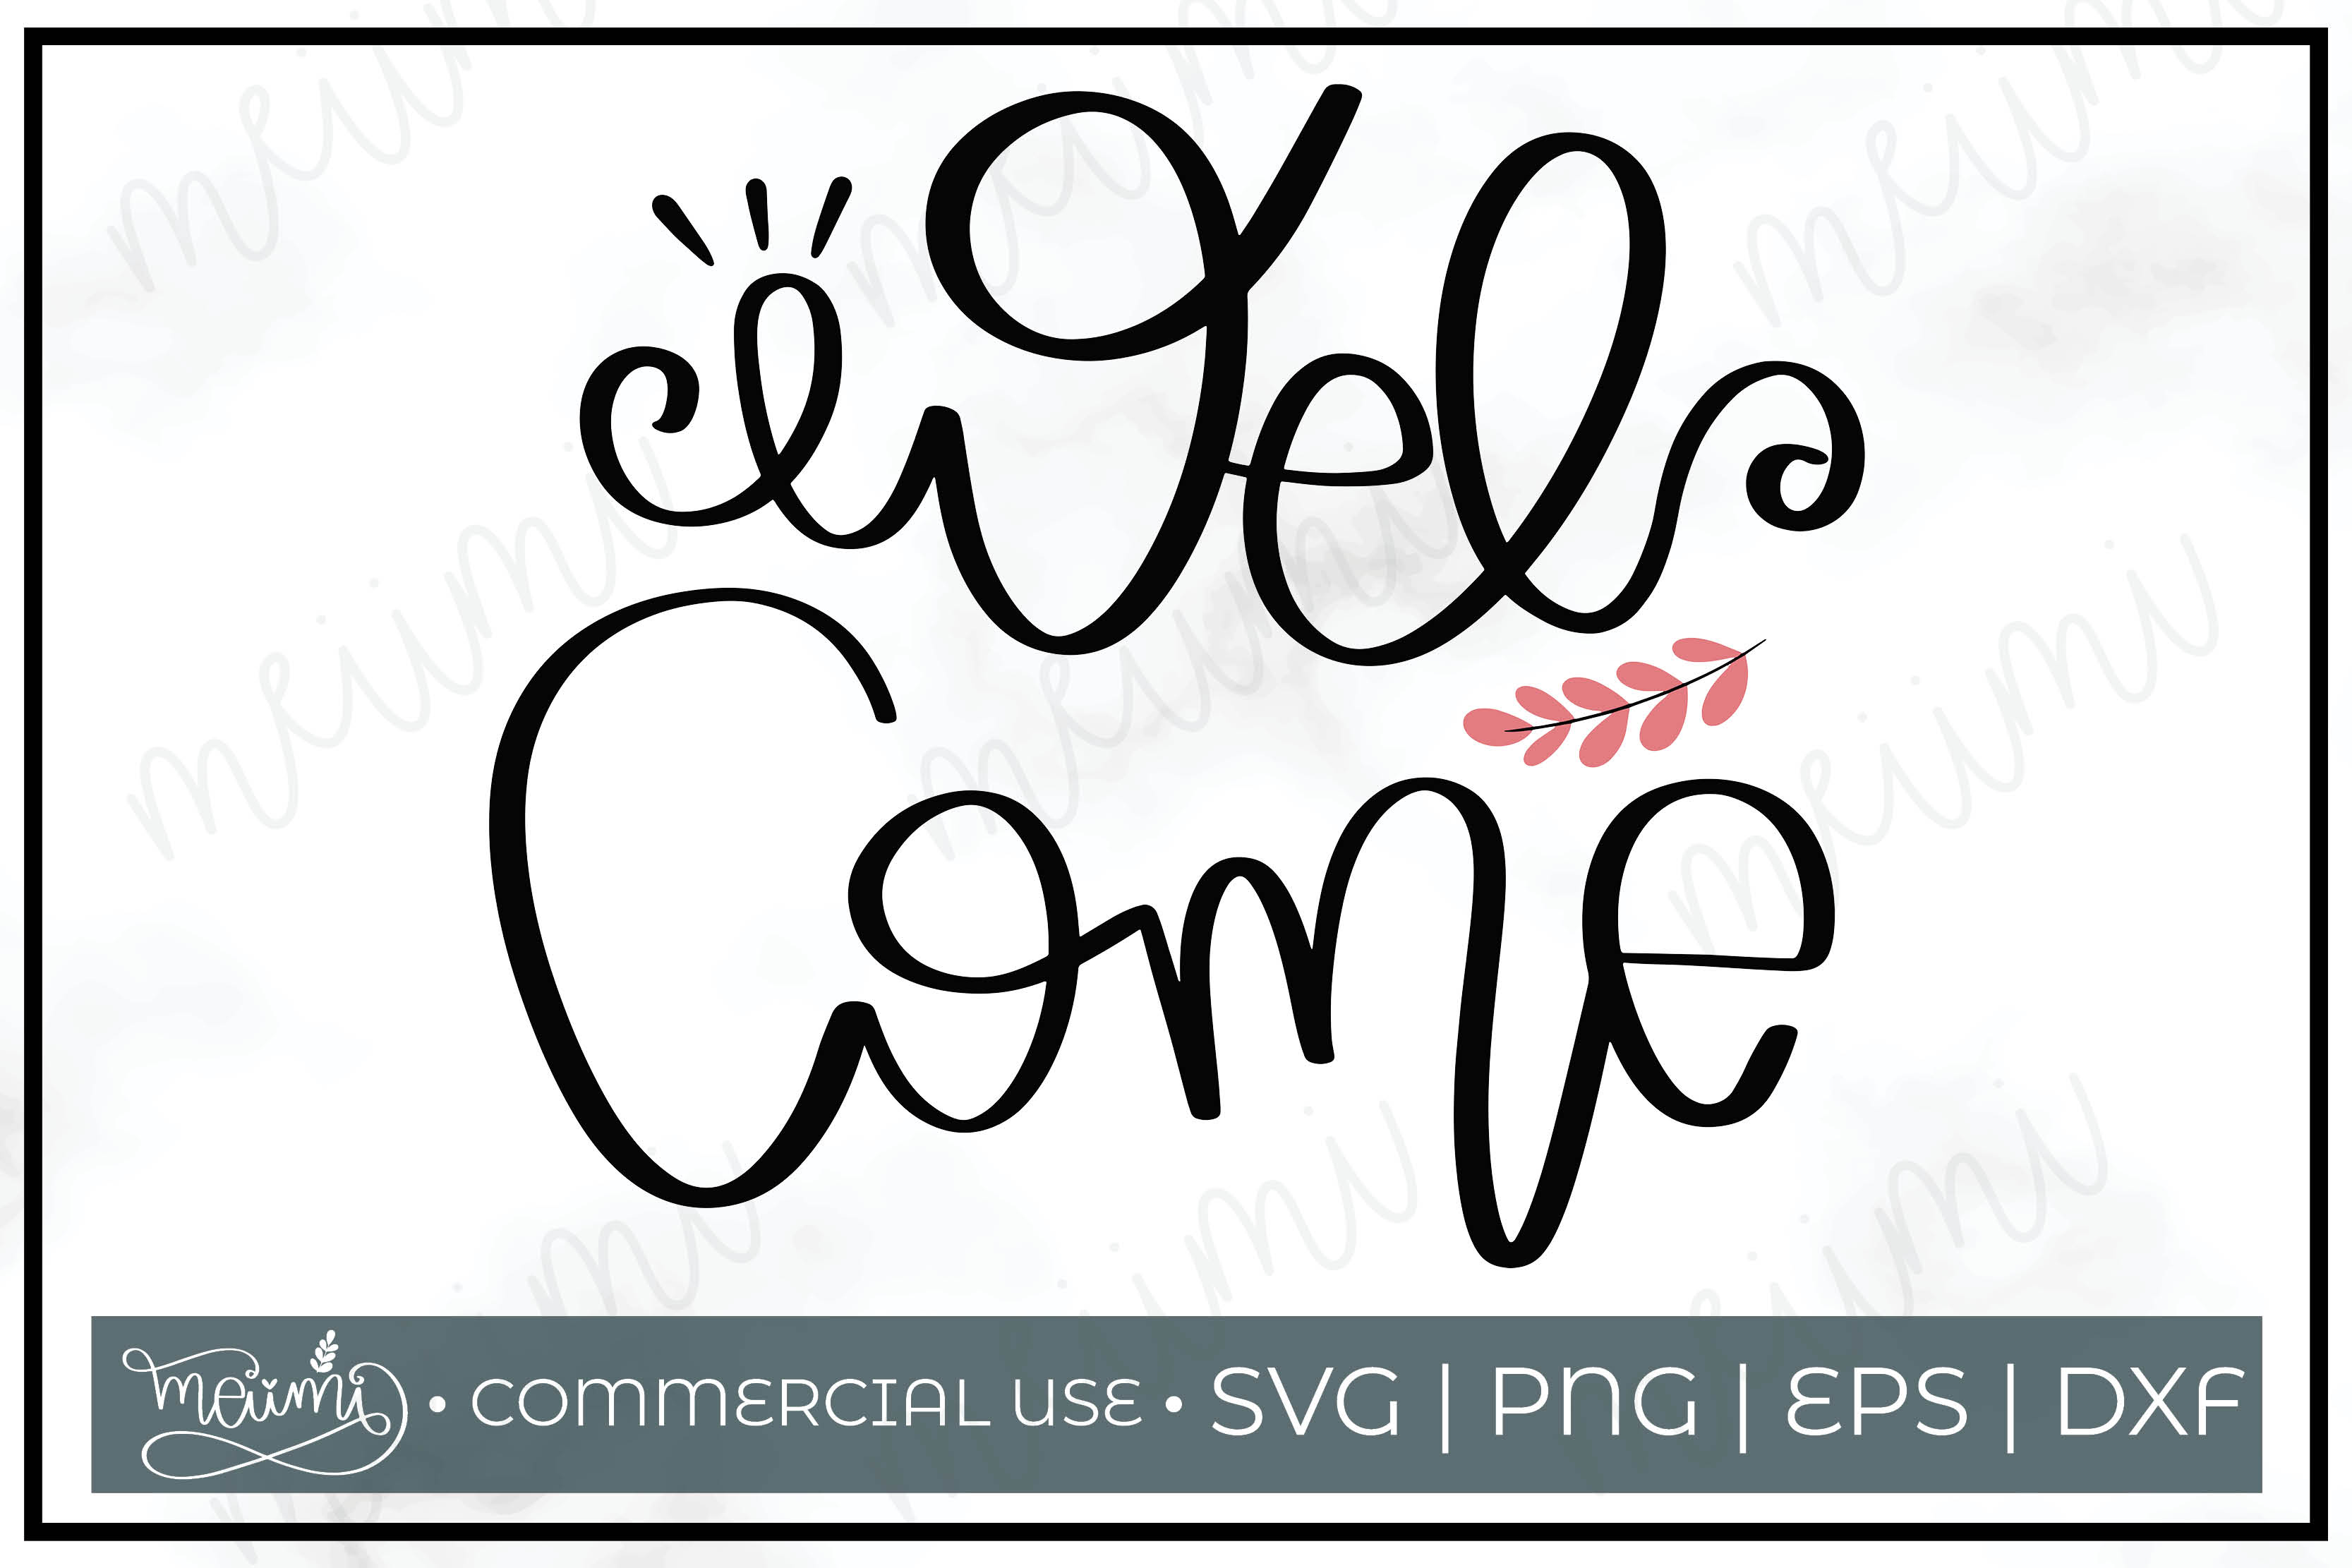 Download Free Welcome Cut File Printable Graphic By Meiimi Creative Fabrica for Cricut Explore, Silhouette and other cutting machines.